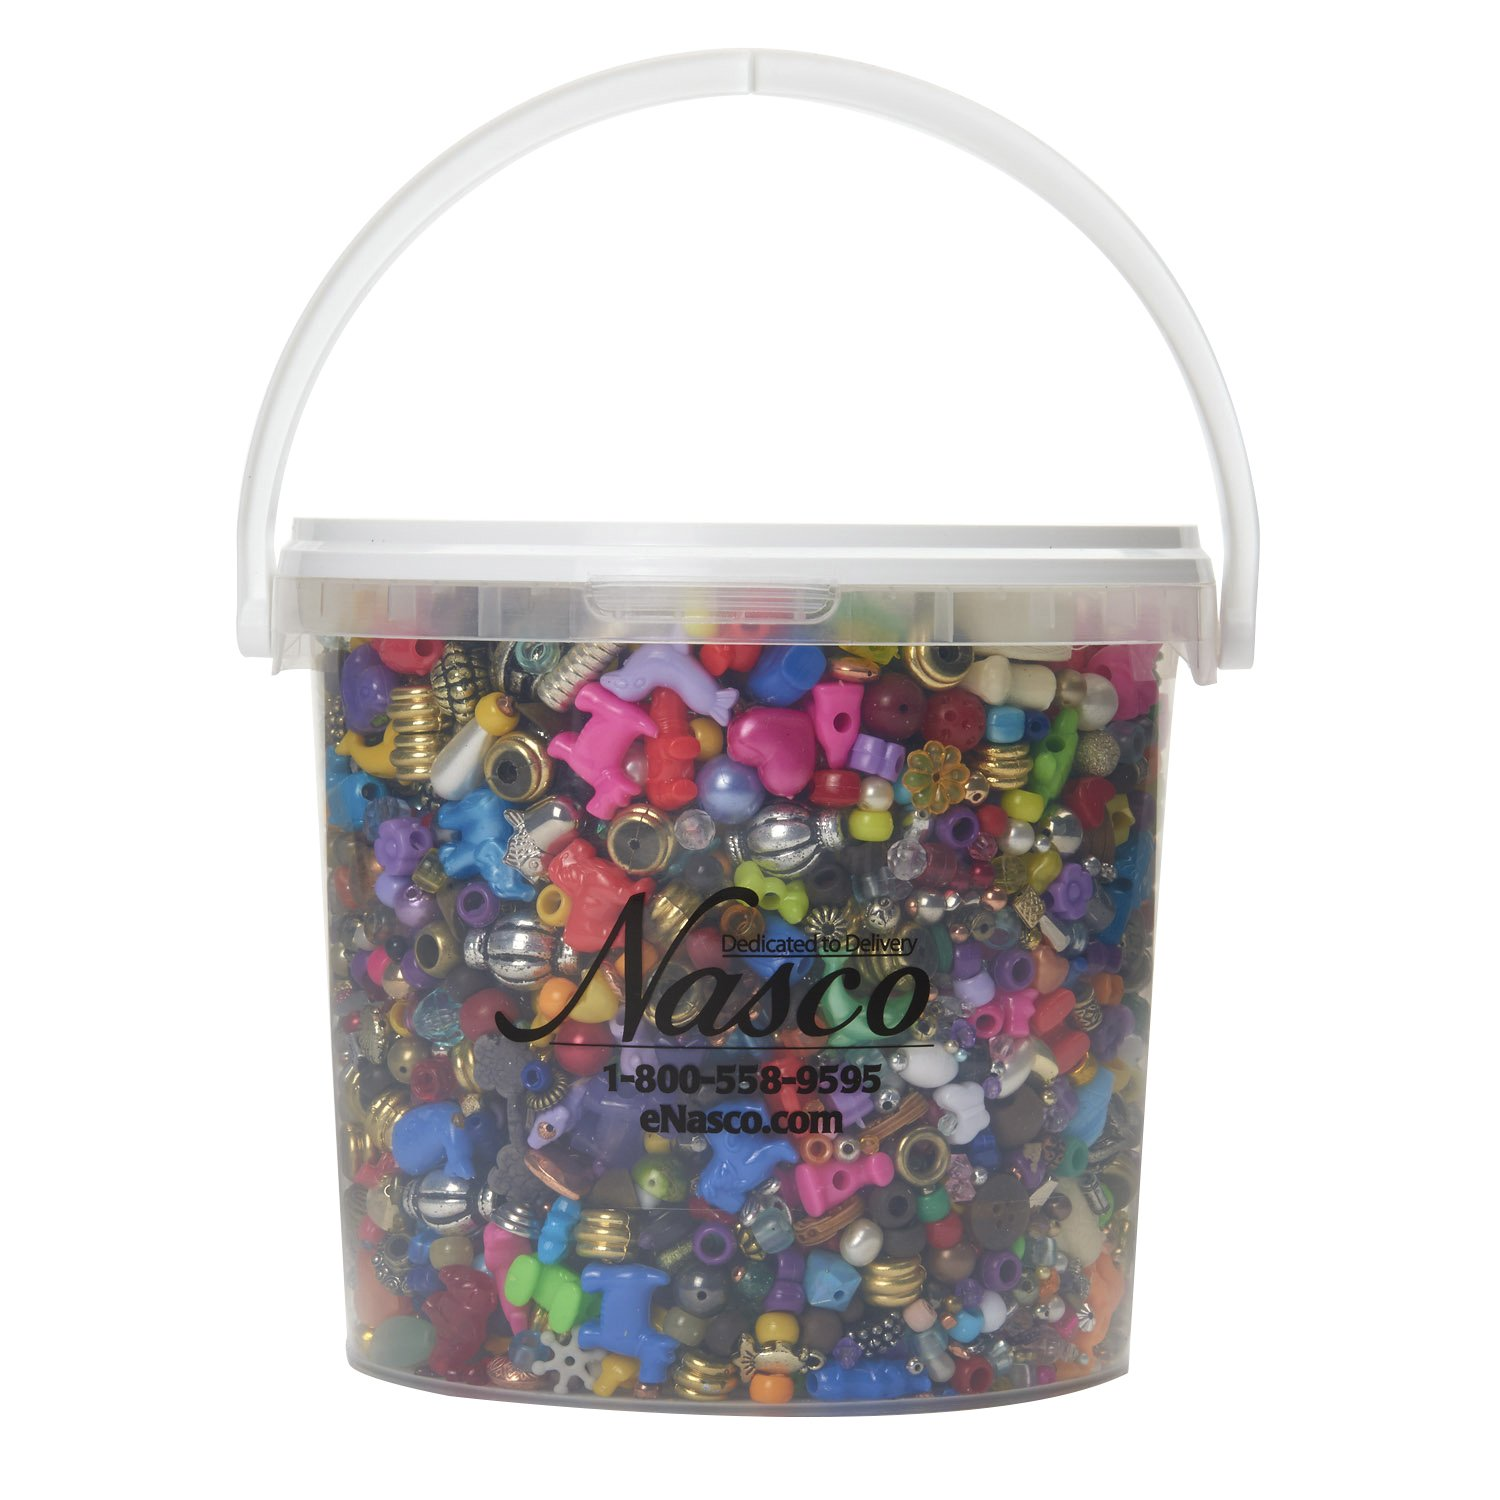 Nasco's Bucket O' Beads and Charms - 6, 500 Beads & Charms - 1, 350 ft of nylon cording